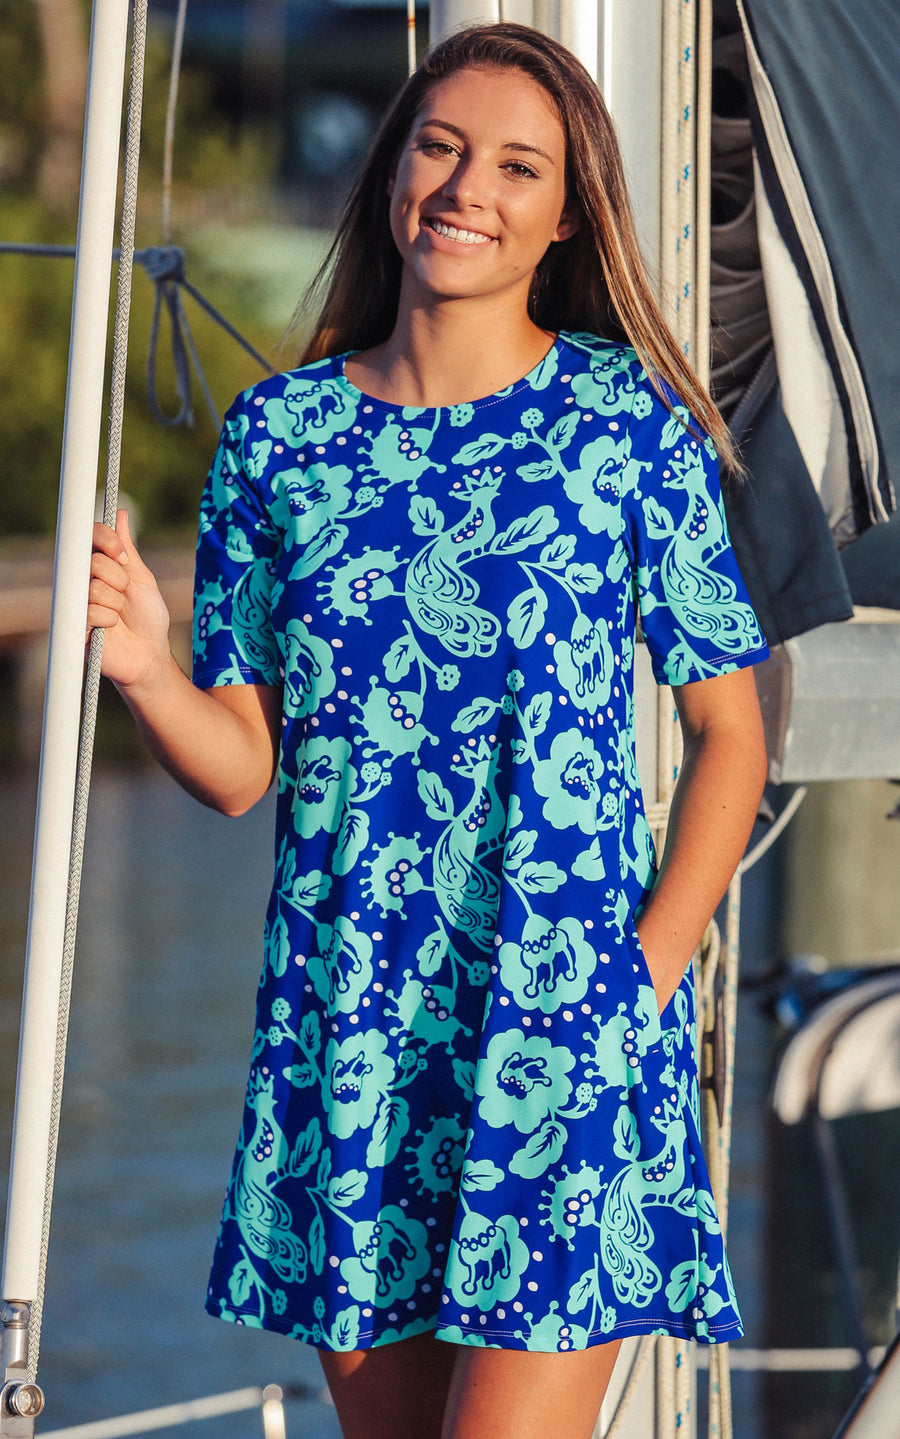 All For Color-Birds of a Feather Bayshore Lane Swing Dress - FINAL SALE-Dresses